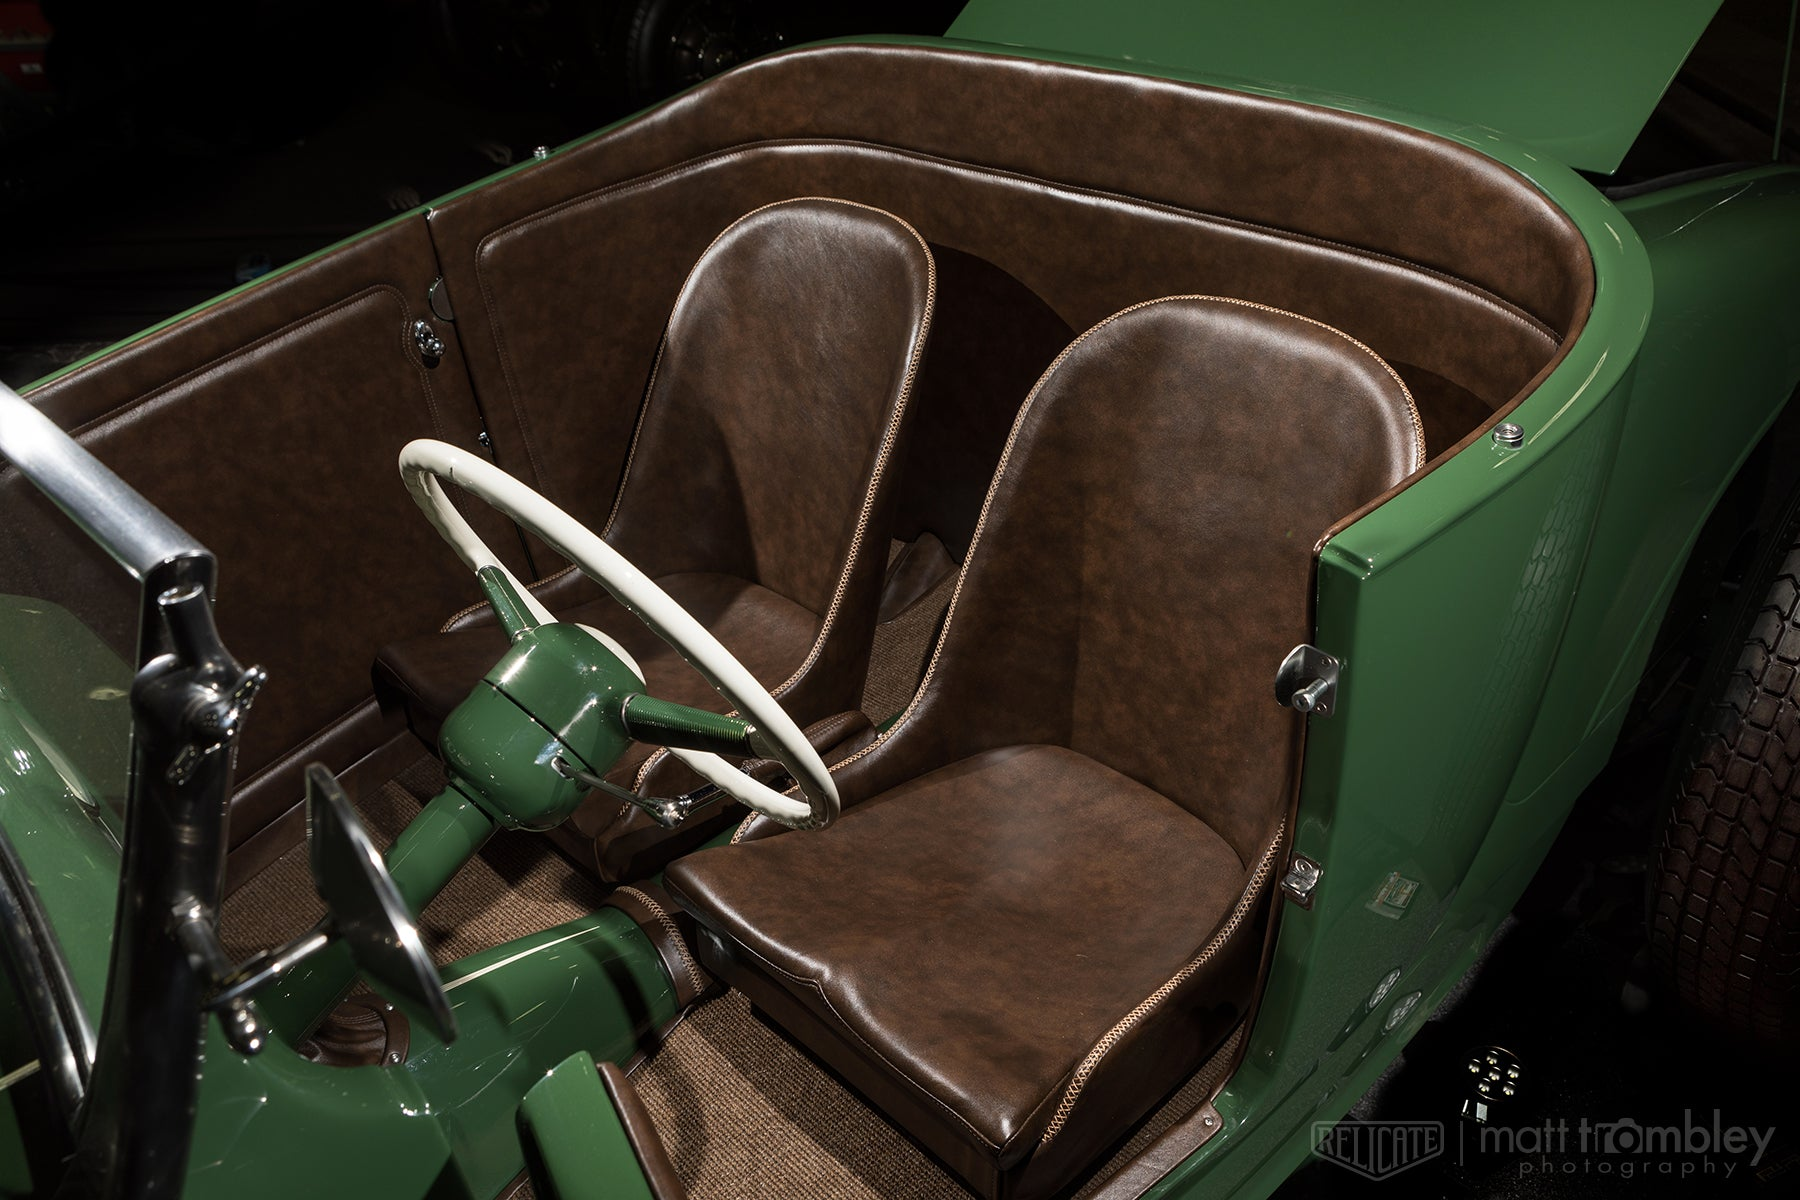 Relicate Antiqued Mocha Leather 1927 Ford Model T leather interior